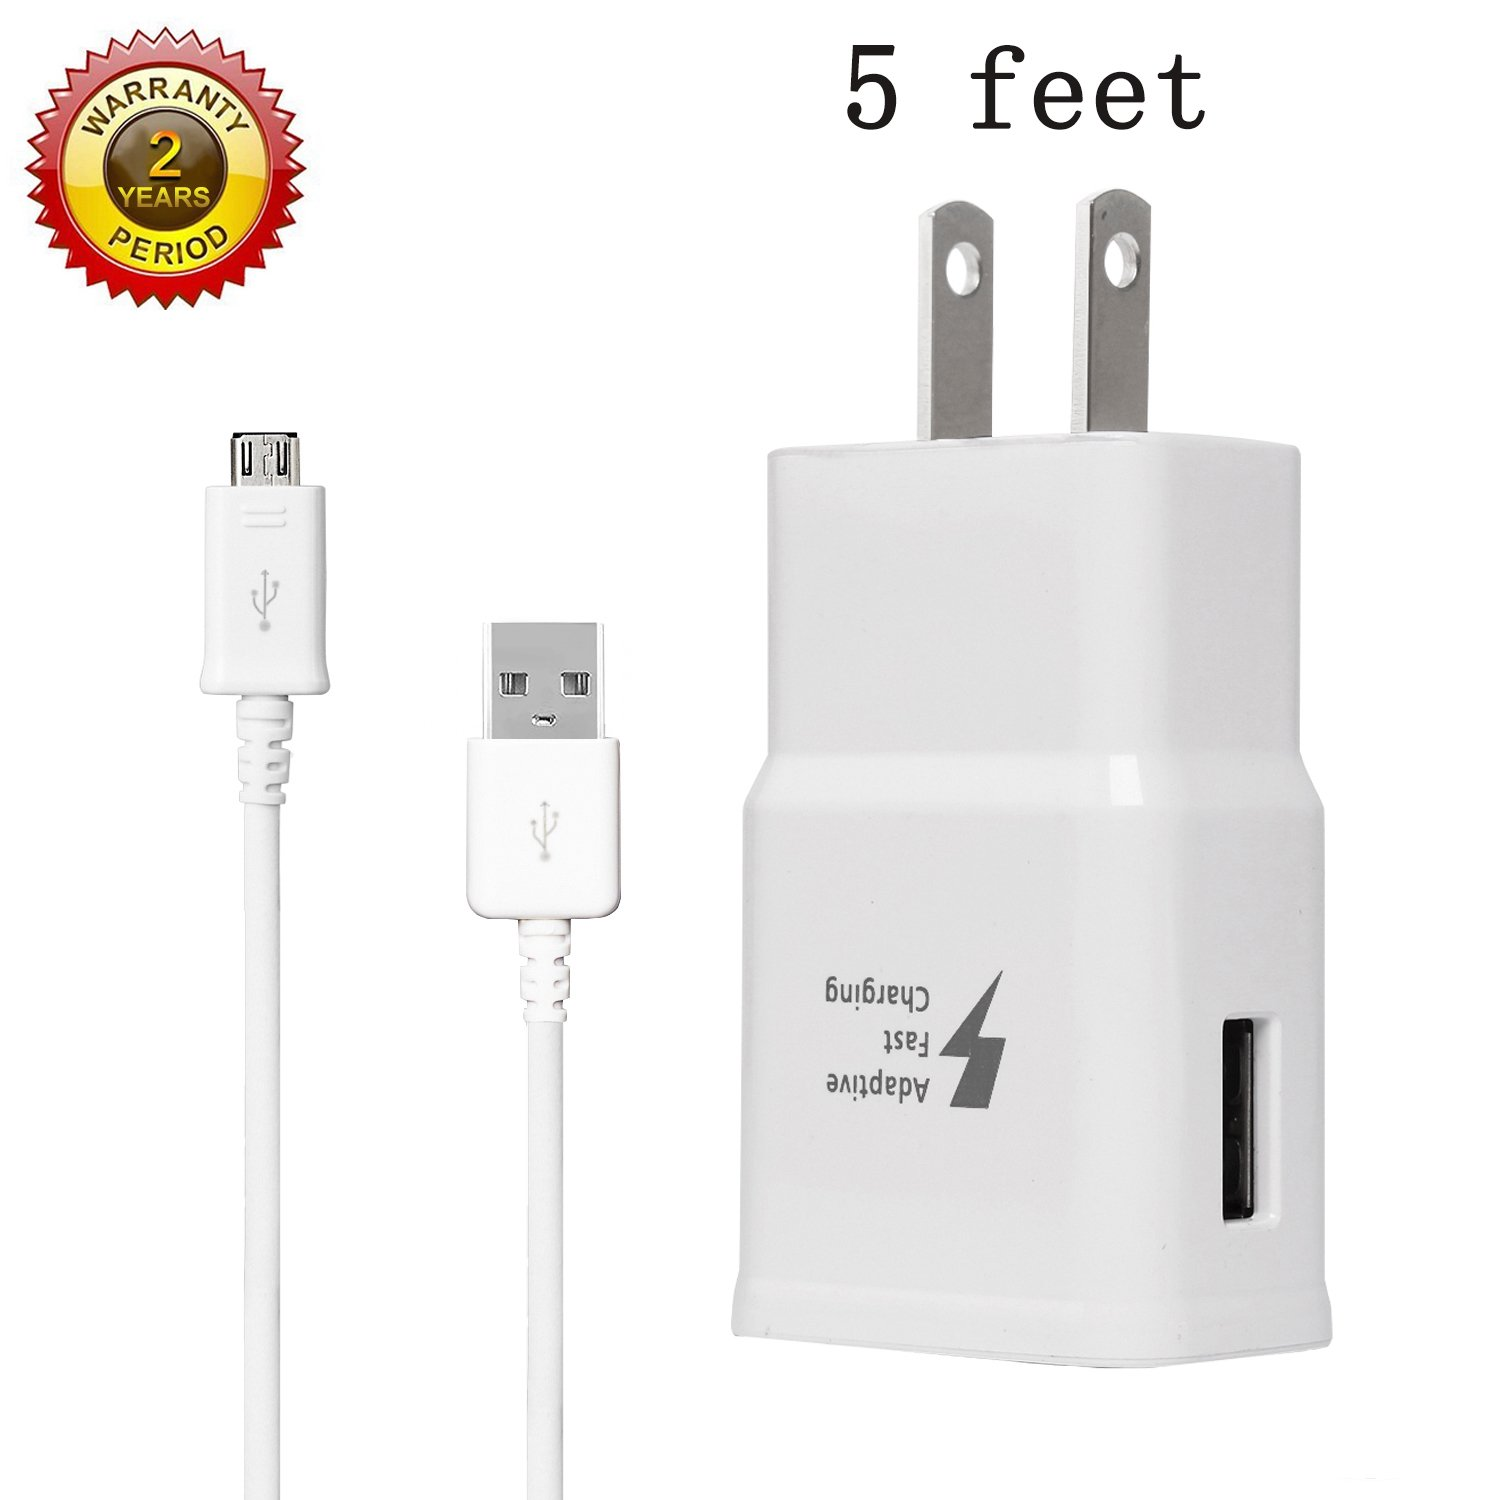 MBLAI Fast Charge Adaptive Fast Charger Kit for Samsung Galaxy S7/S7 Edge/S6/Note5/4 /S3,MBLAI USB 2.0 Fast Charging Kit True Digital Adaptive Fast Charging (Wall Charger + Micro USB Cable) by MBLAI (Image #1)